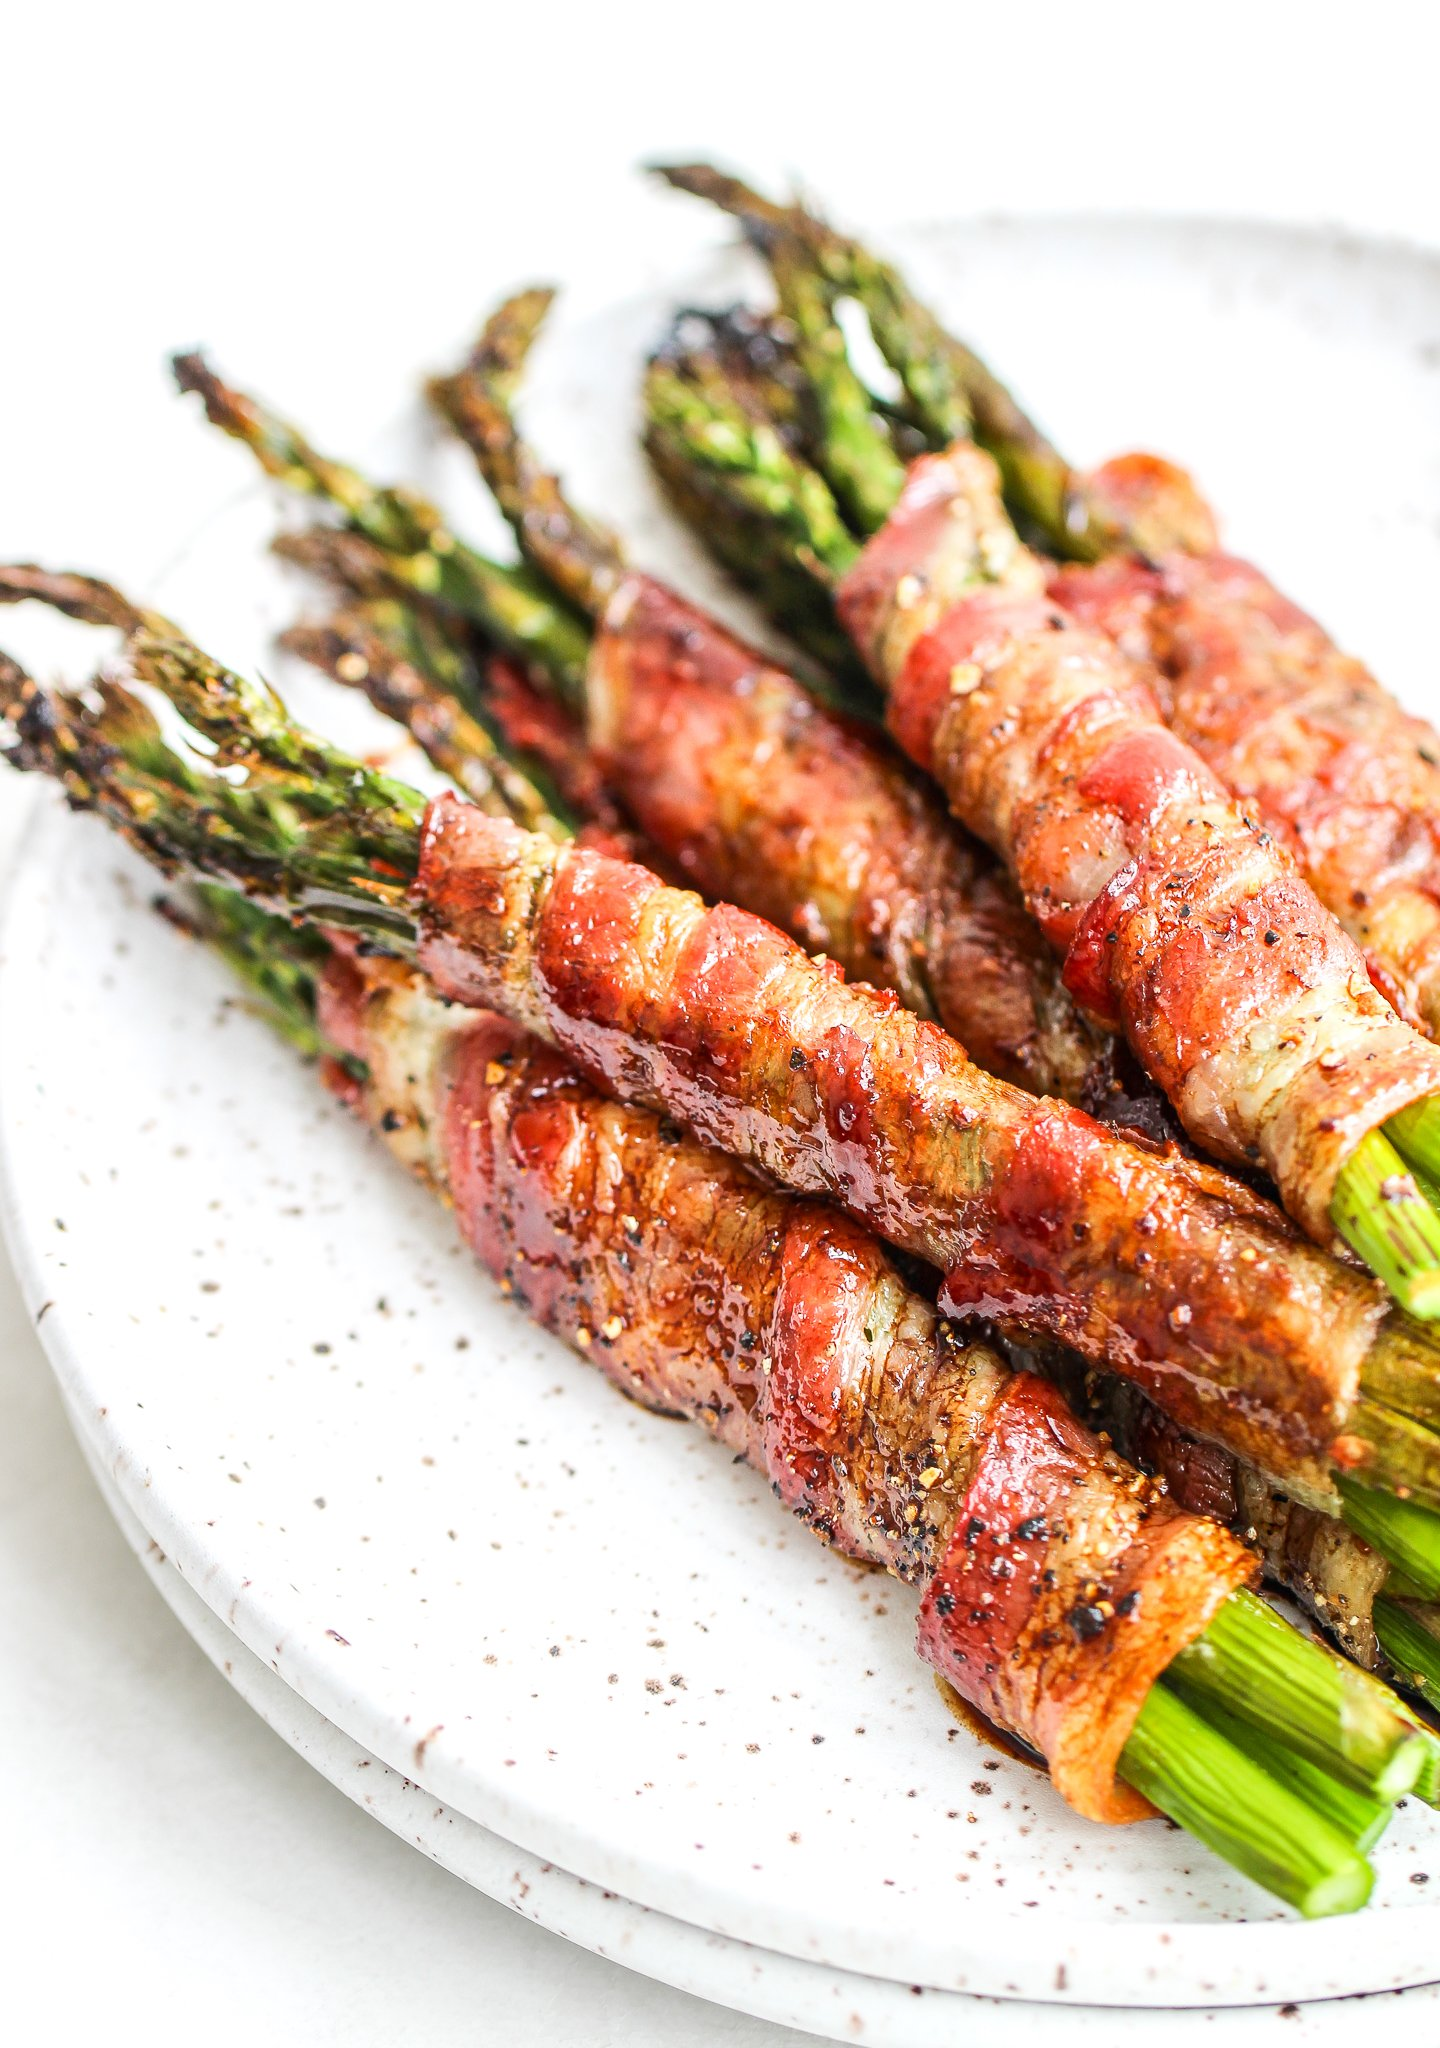 close up bacon wrapped asparagus bundles drizzled with balsamic reduction stacked on a ceramic plate with gold forks on the side of the plate